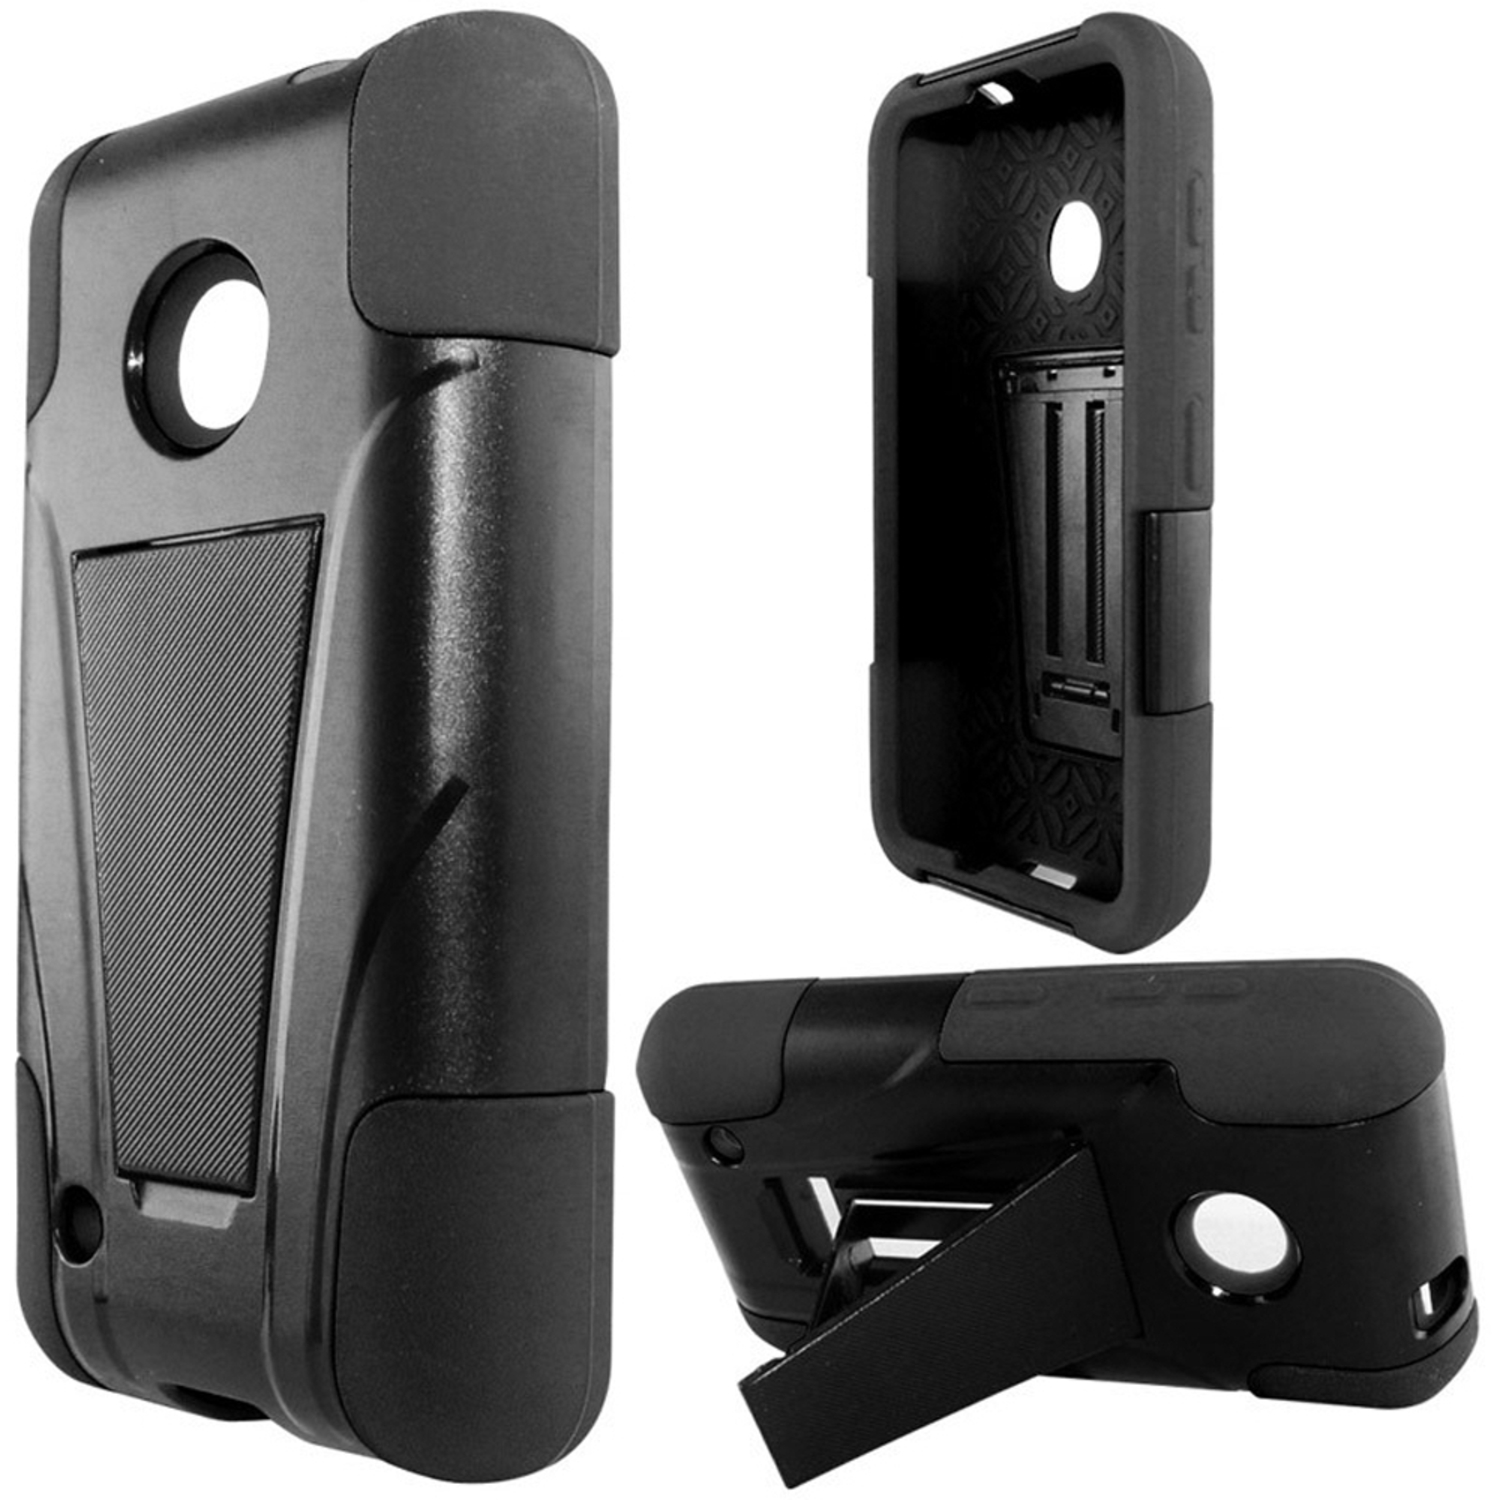 Insten Hard Hybrid Rugged Shockproof Plastic Silicone Cover Case with Stand For Nokia Lumia 530 - Black